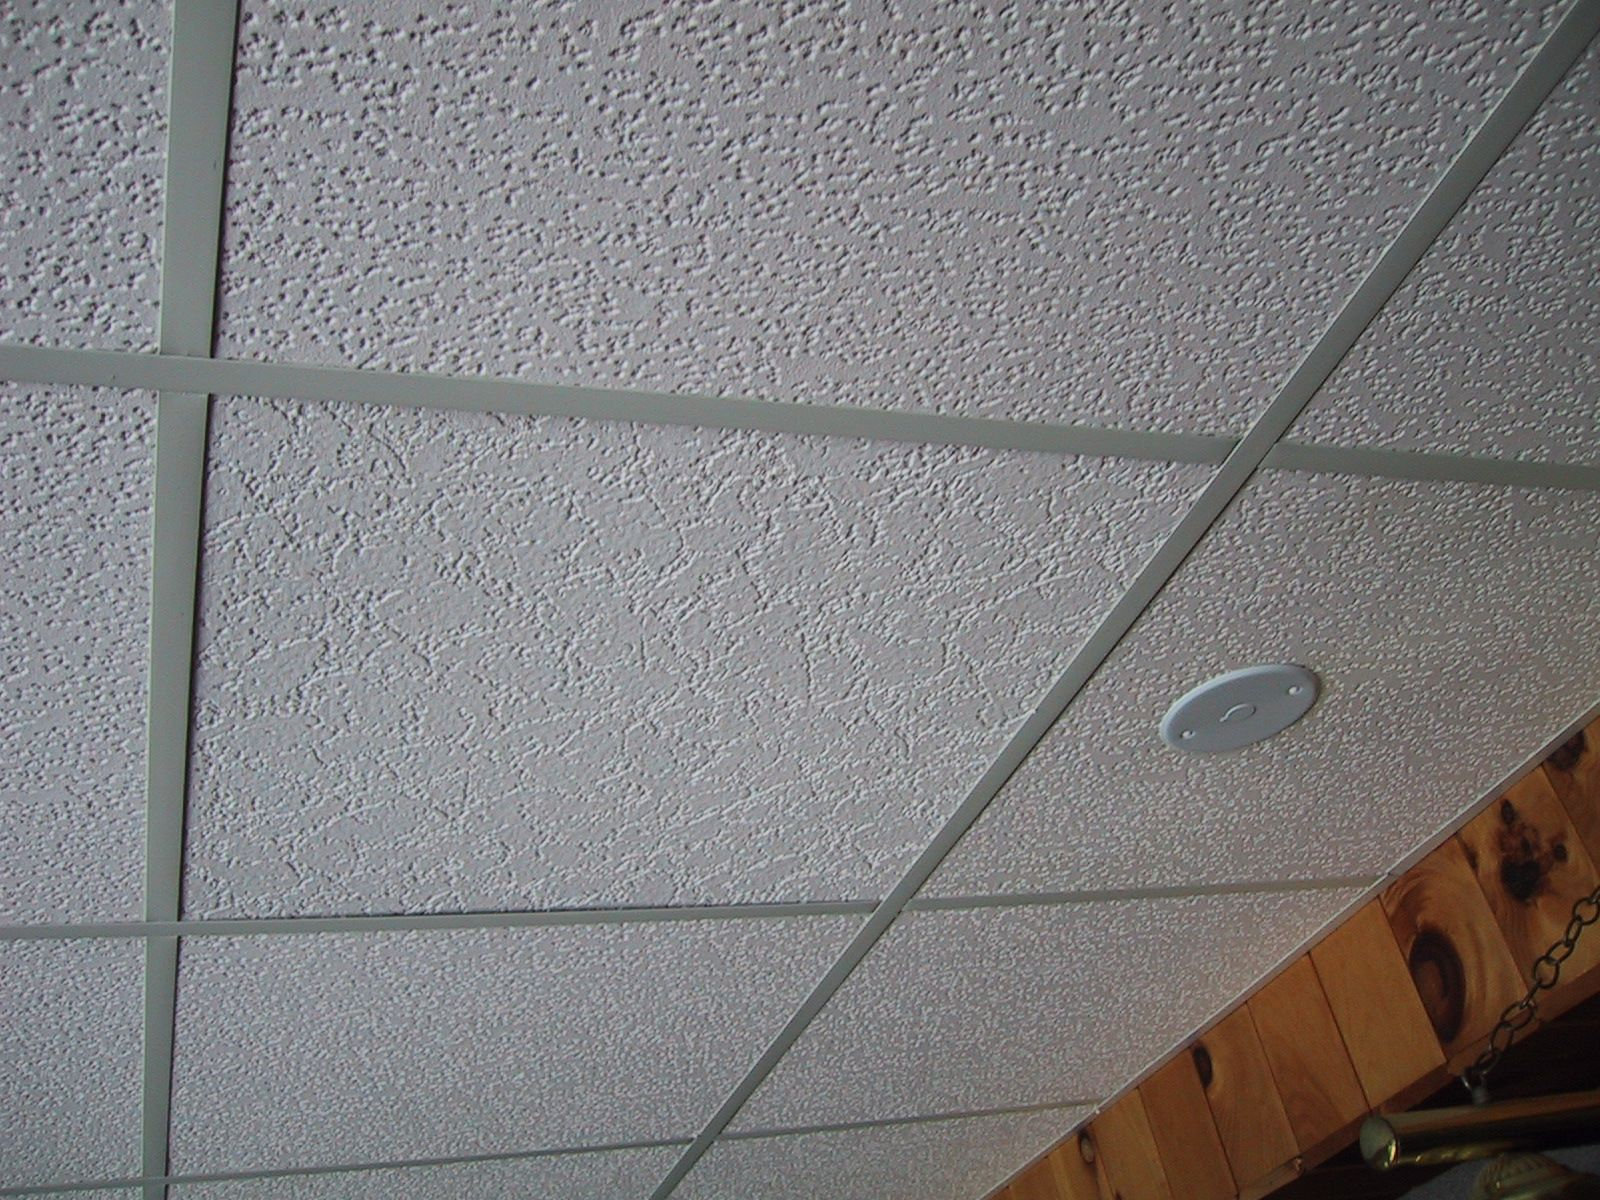 lights tiles uk of dropped a customer ceiling supplier service leading accessories home